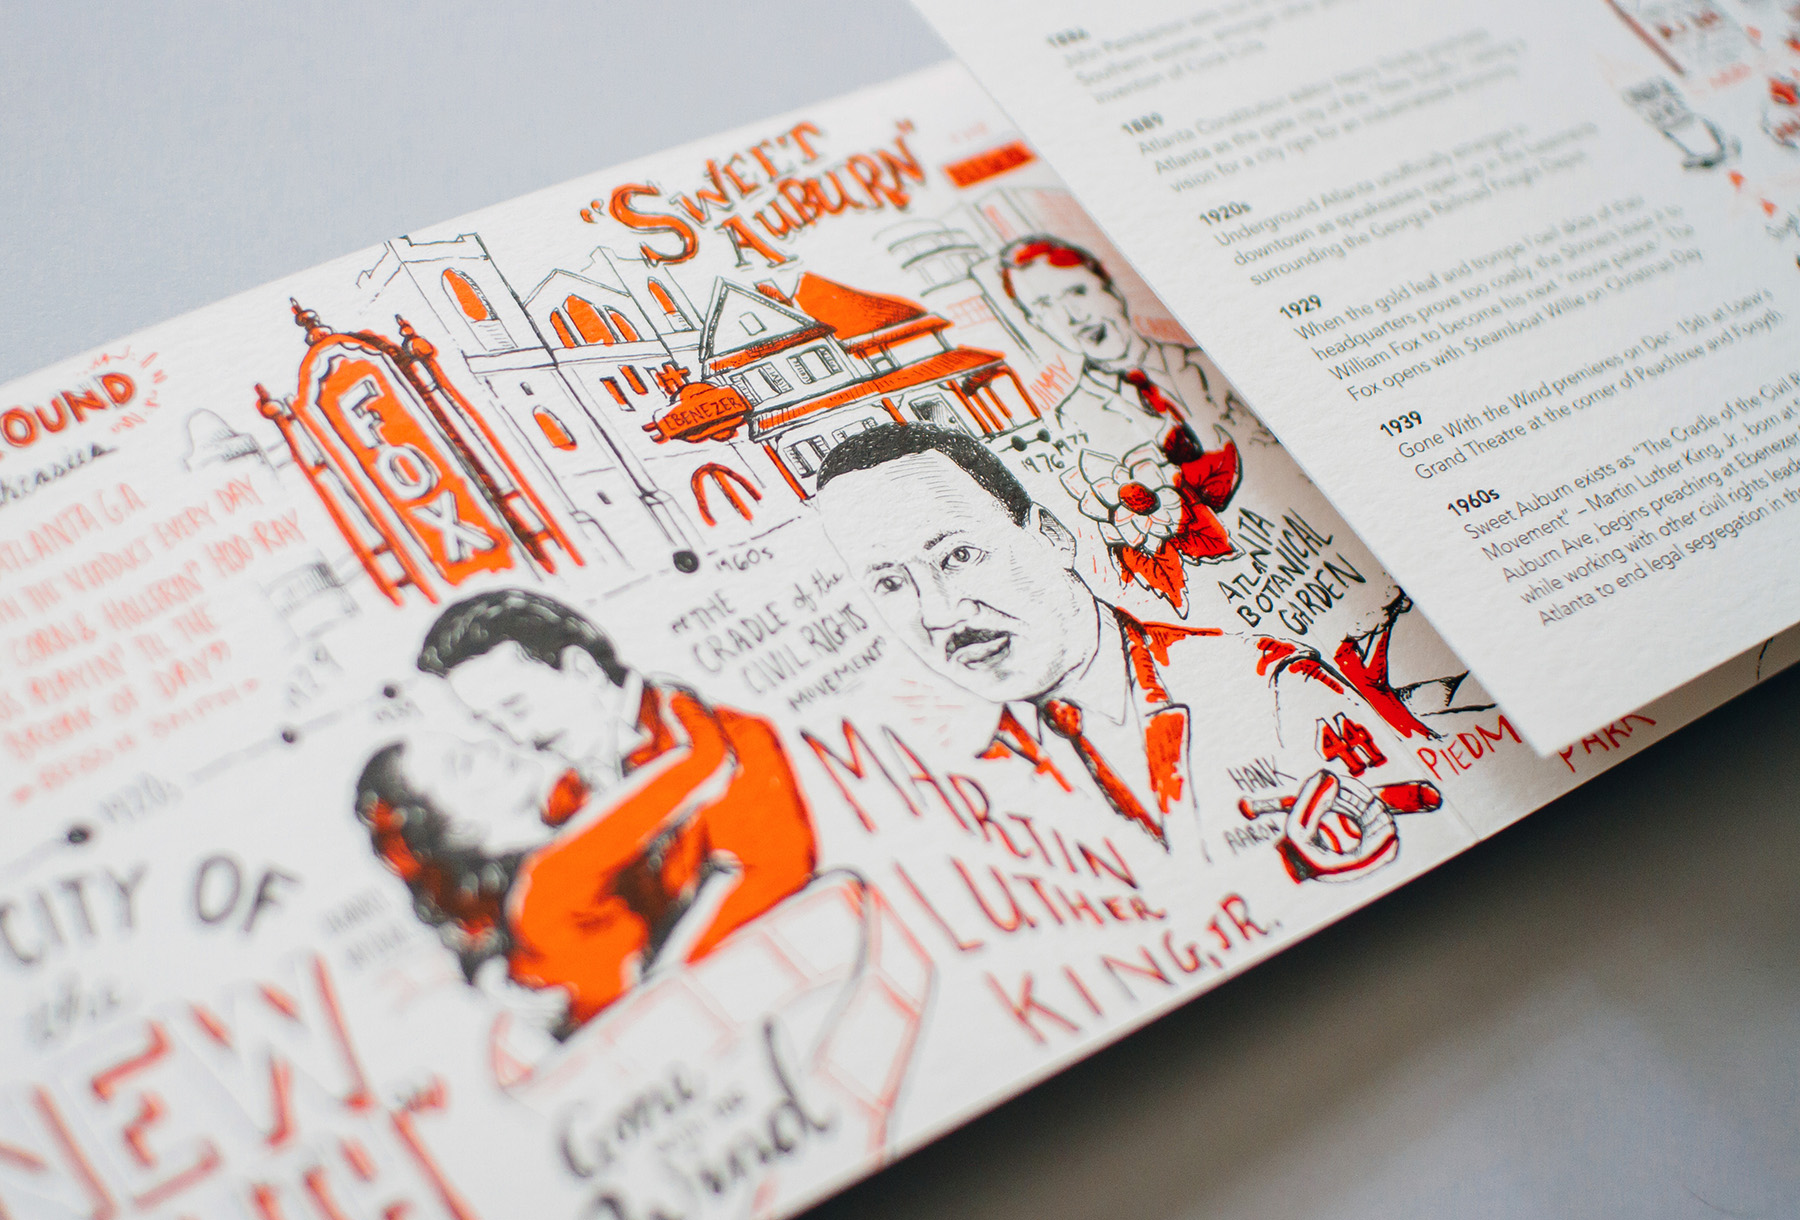 Shown: Martin Luther King Jr., the Fox Theatre and Sweet Auburn.Detail of the Neenah Paper illustrated historical timeline for the city of Atlanta printed promotional marketing design. Hand lettered and hand drawn illustrations by Russell Shaw.